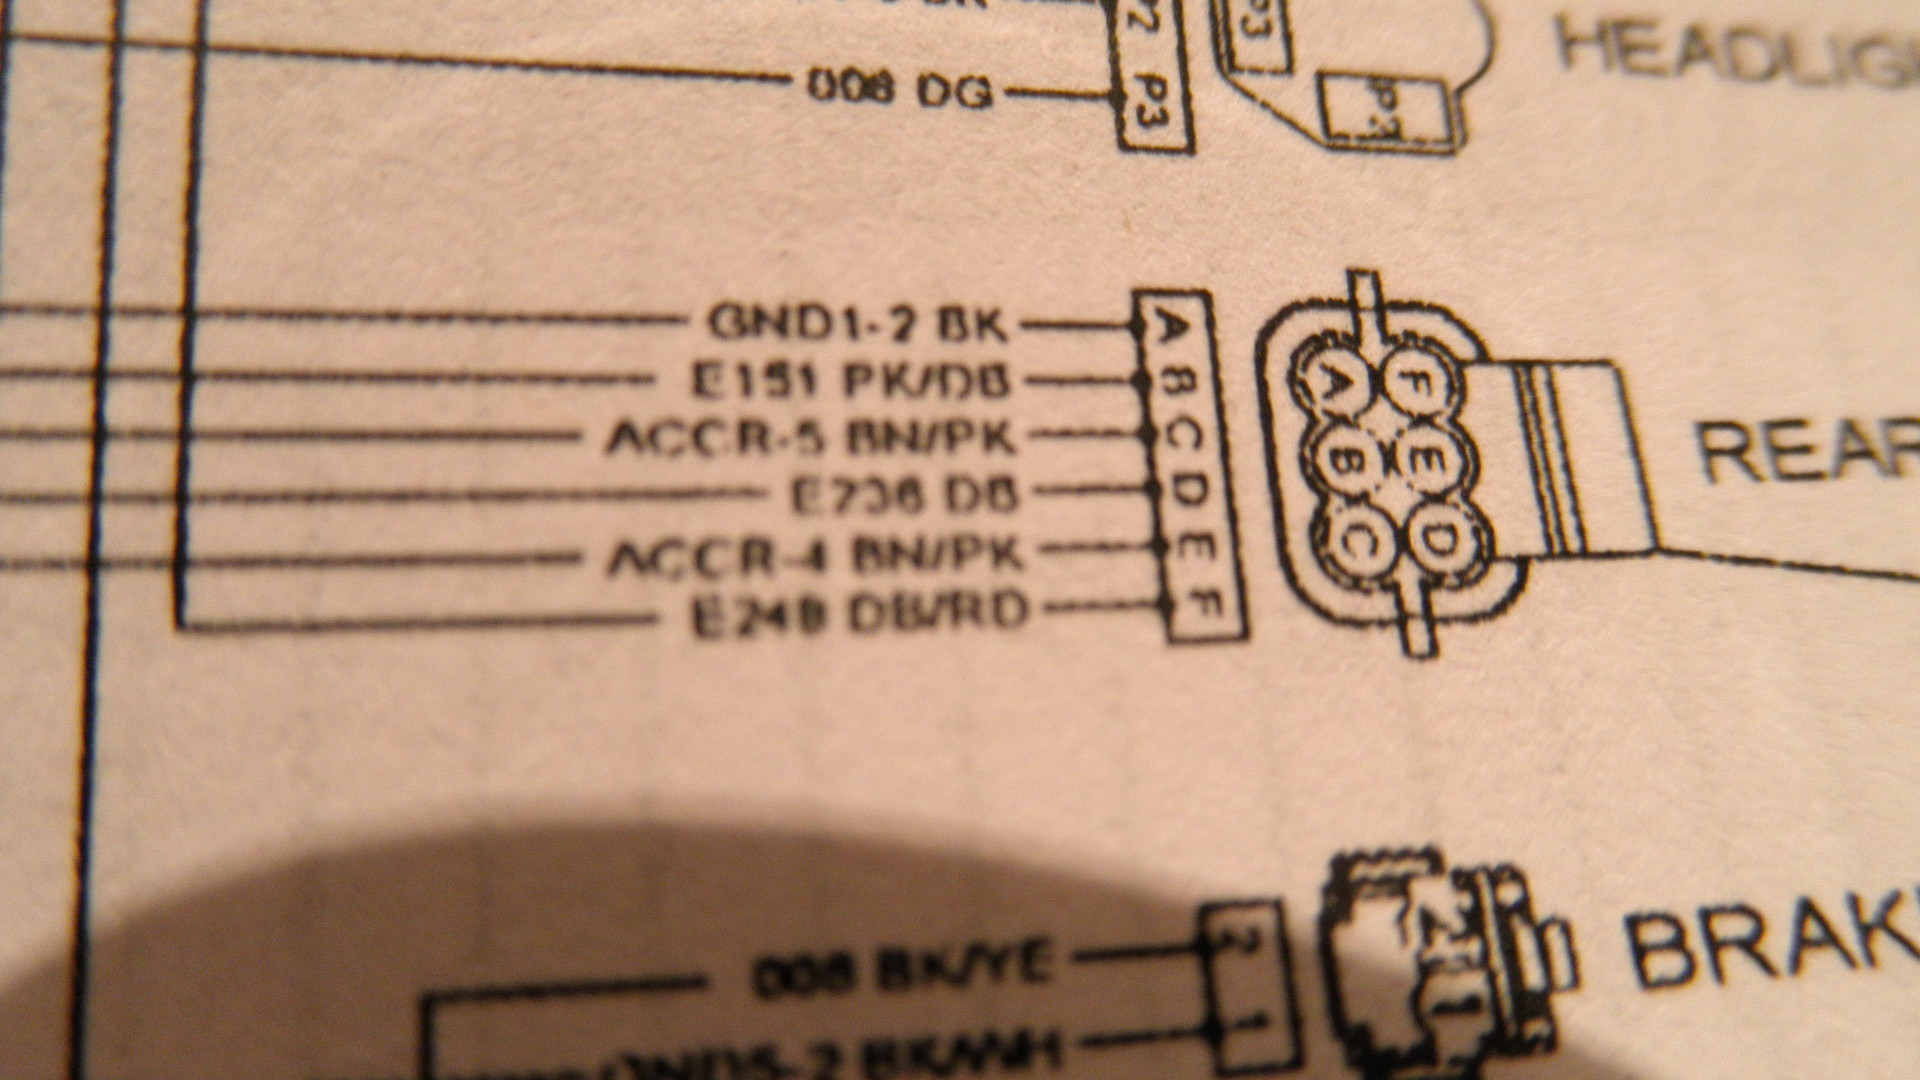 2002 Indian Scout Wiring Diagrams Library. Backoff Xp Module Install Indian Motorcycle Chevrolet Wiring Diagram 2014. Wiring. 1947 Indian Chief Wiring Diagram At Scoala.co